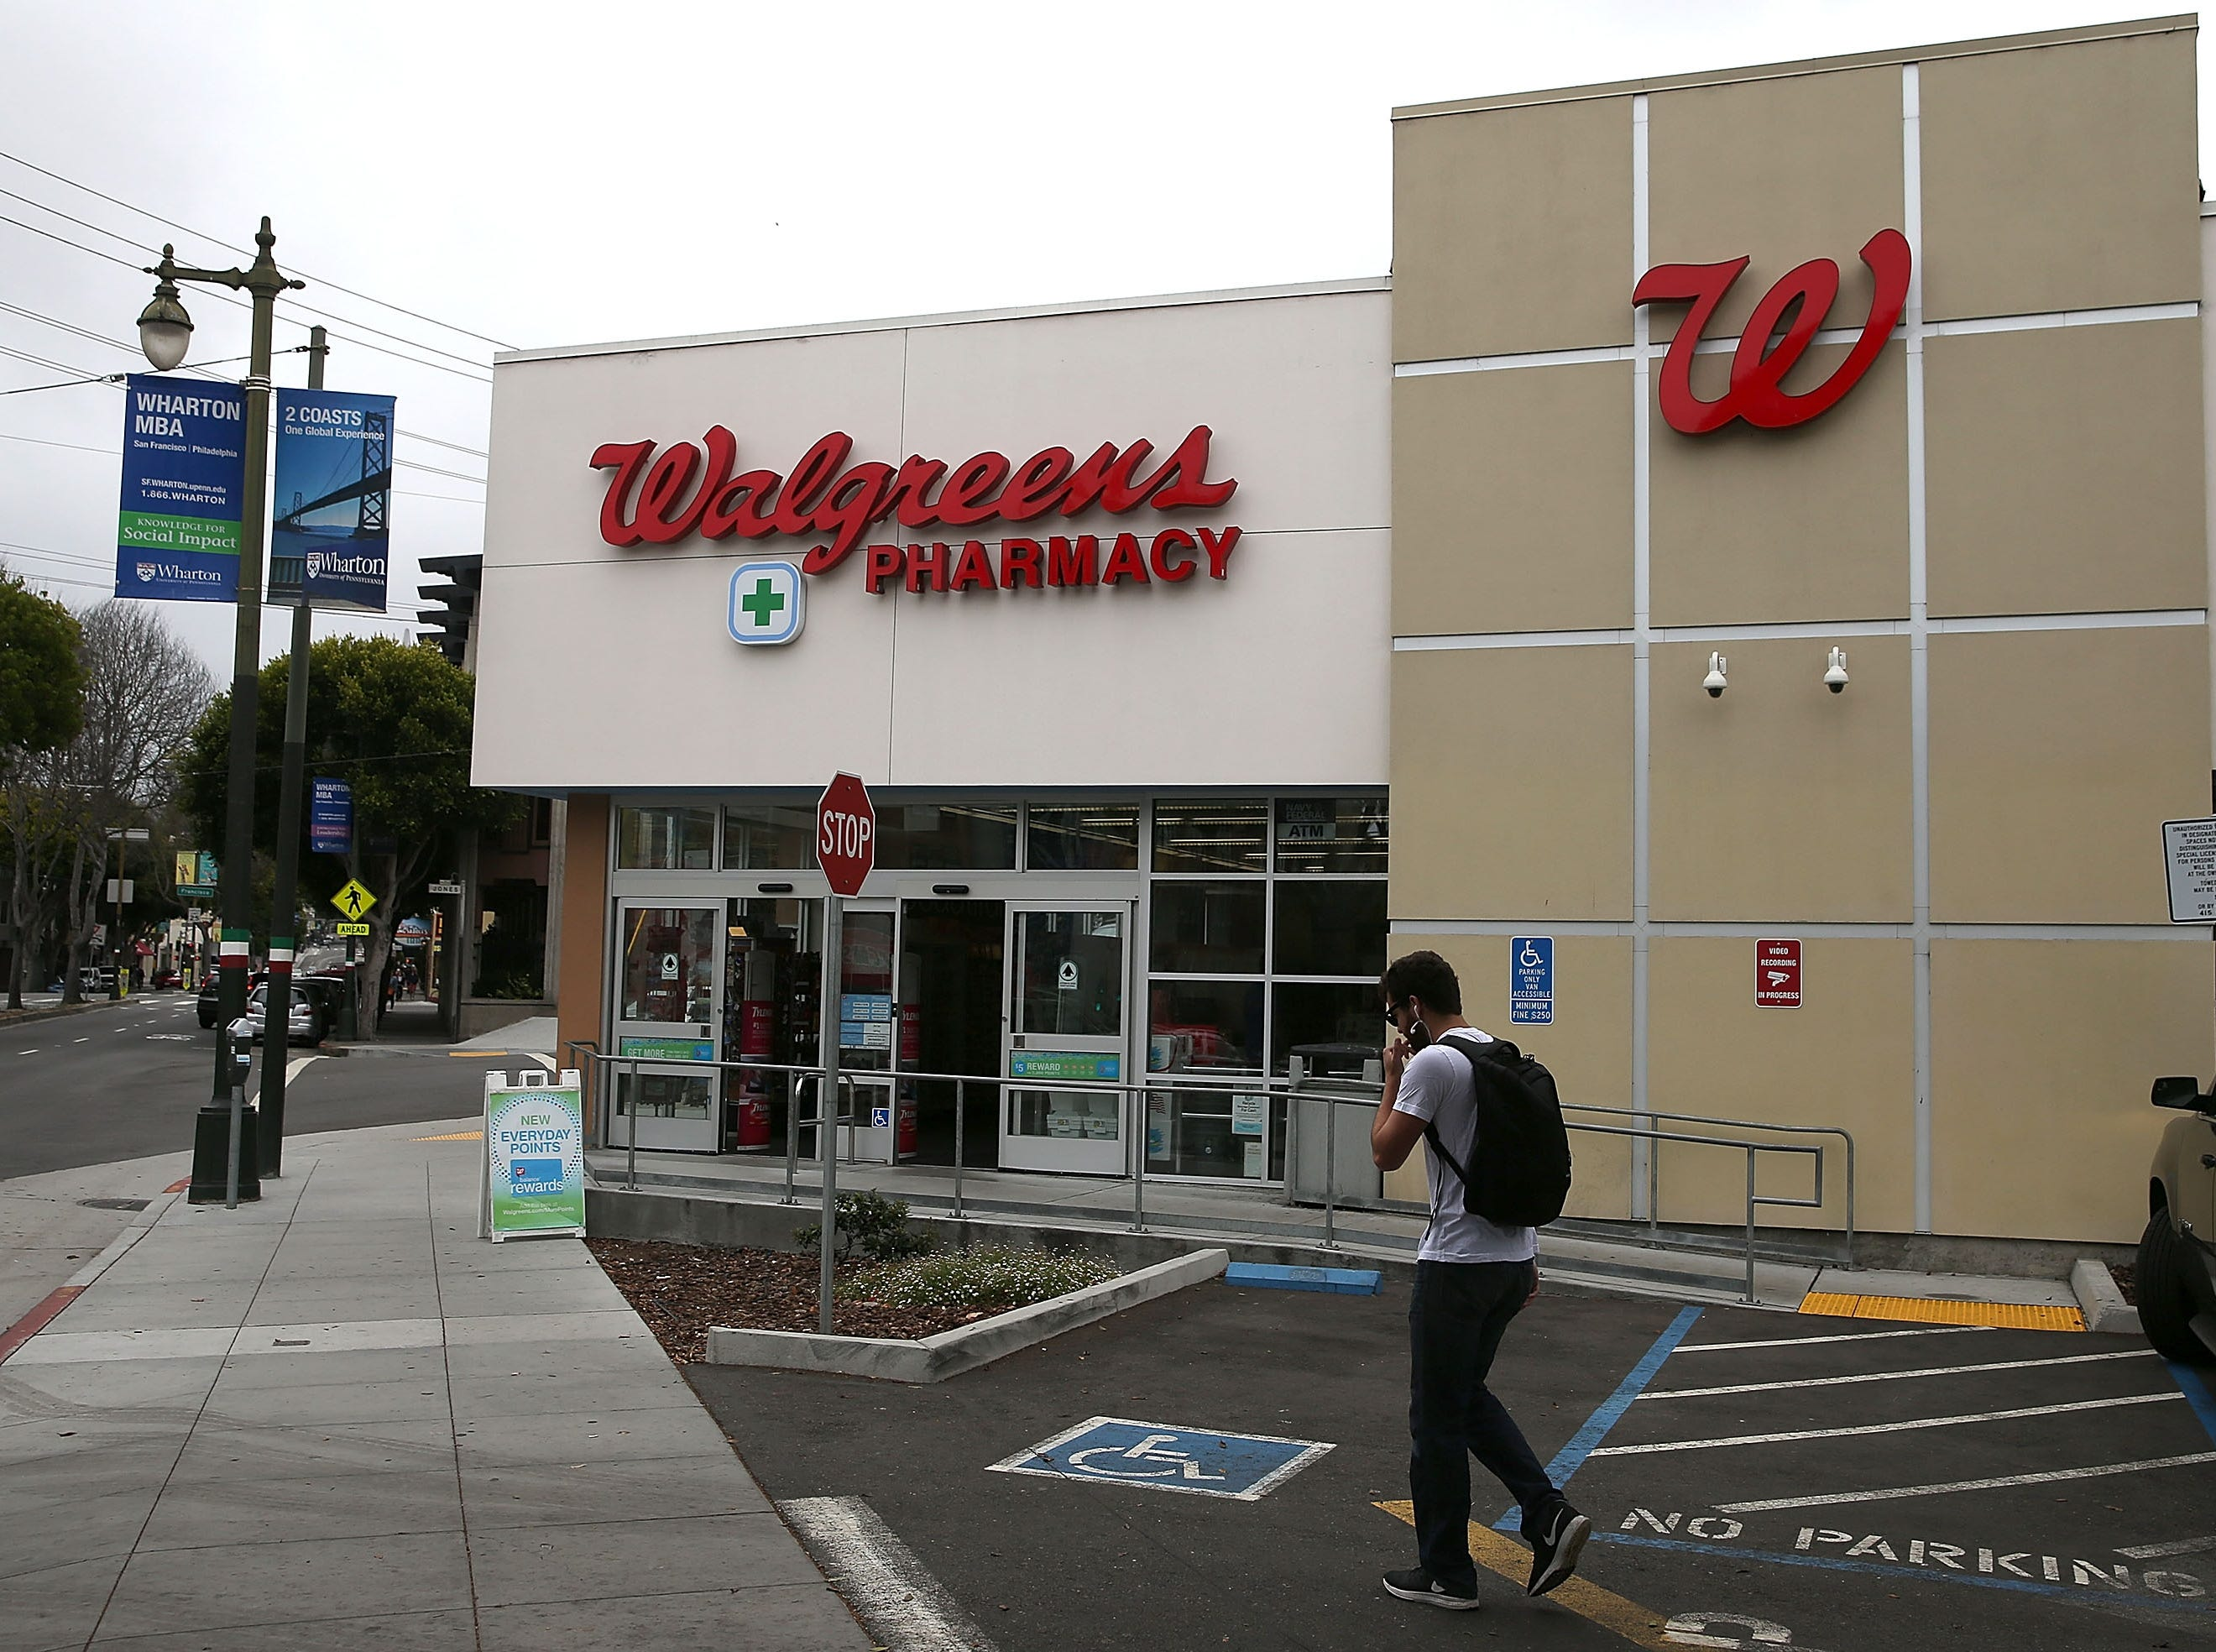 Walgreens, hiring 110. The company that operates pharmacies and retail centers has openings ranging from pharmacy technicians to sales associates. More info: walgreens.jobs.